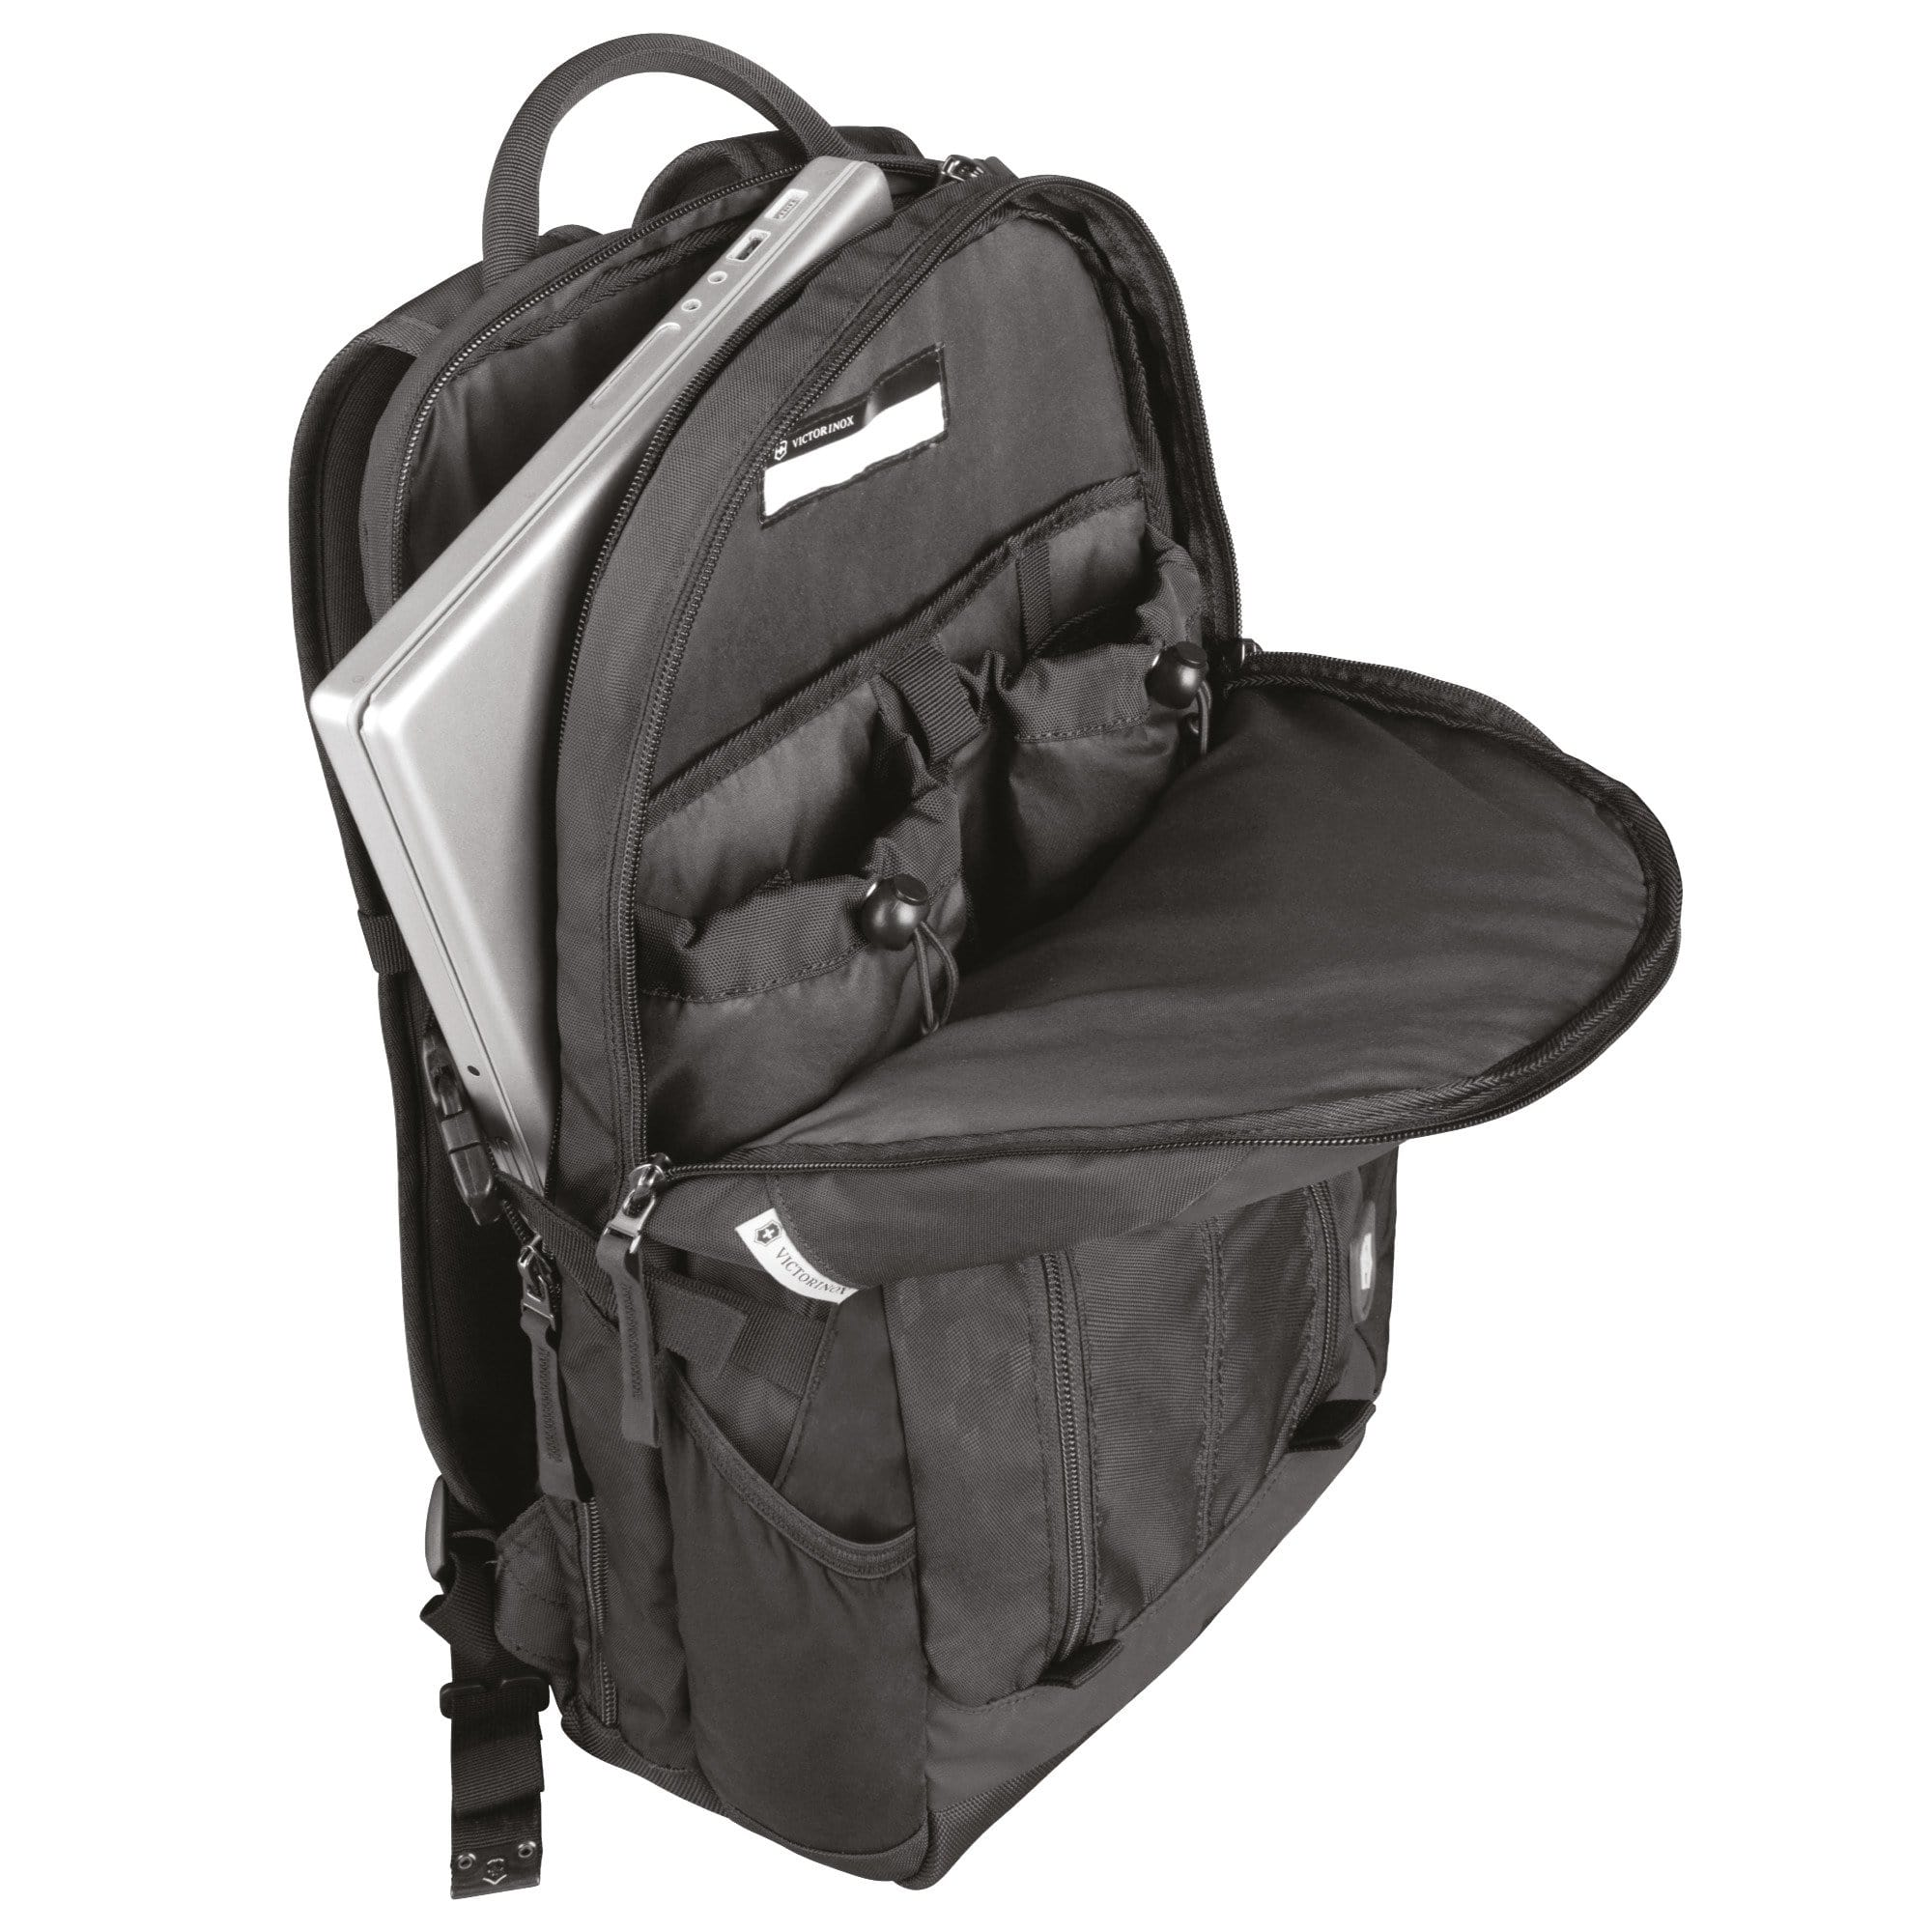 ALTMONT SLIMLINE LAPTOP BACKPACK